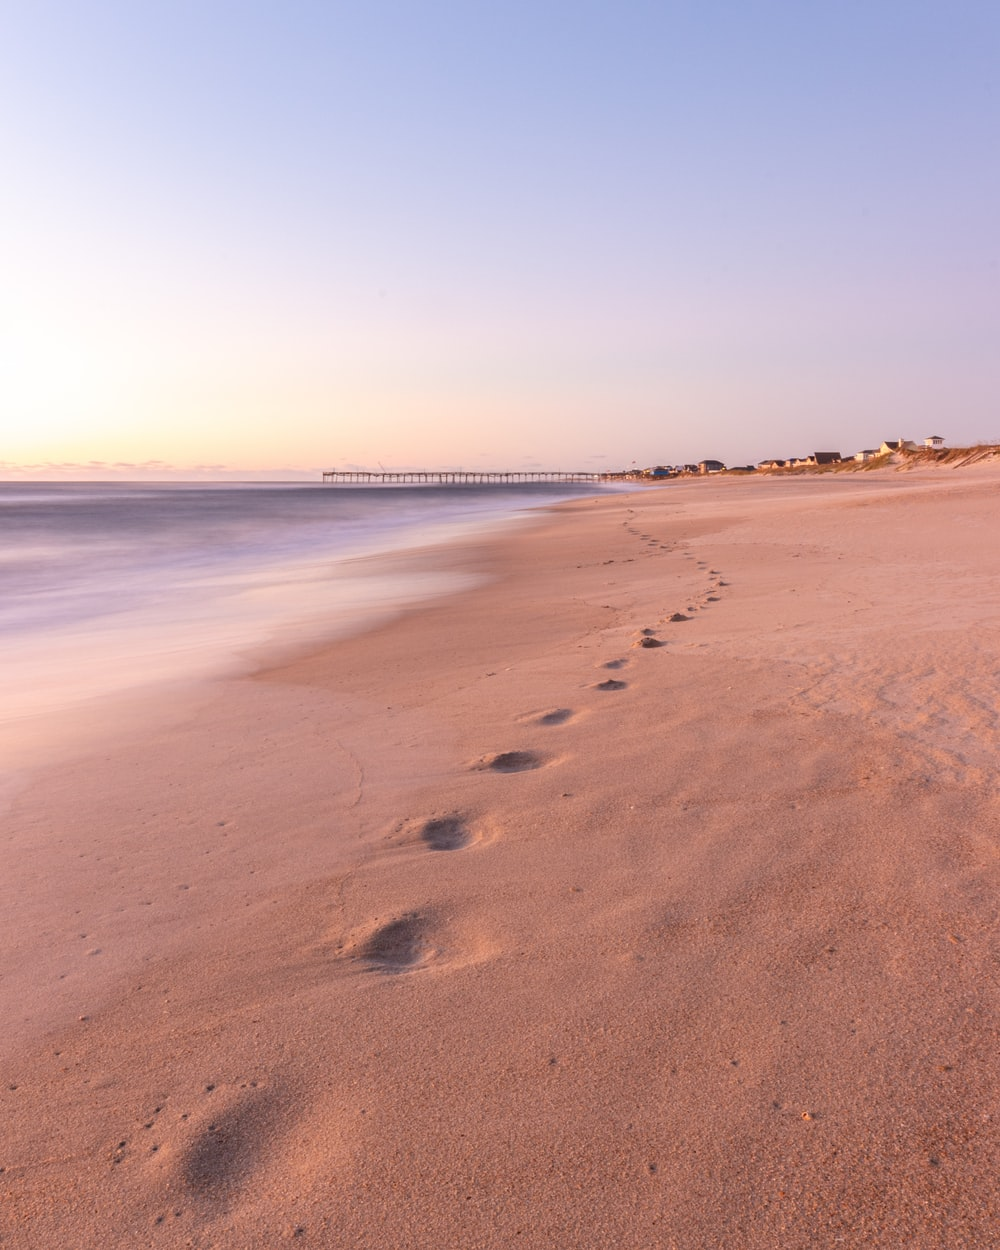 foot prints in the sands during daytime